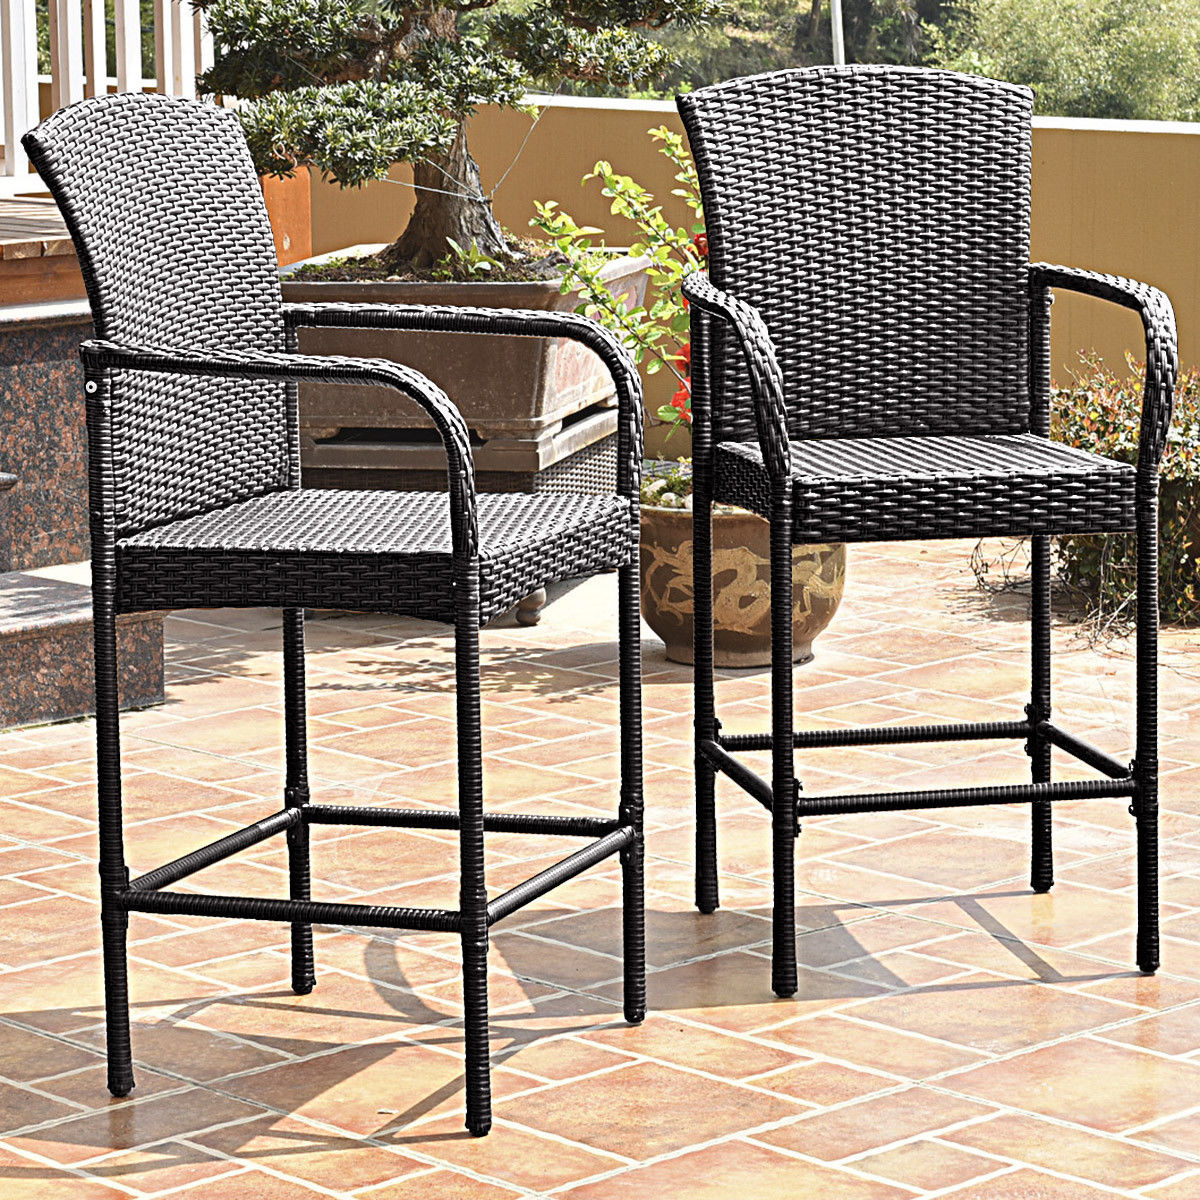 Costway 2PCS Rattan Bar Stool Dining High Counter Portable Chair Patio Furniture